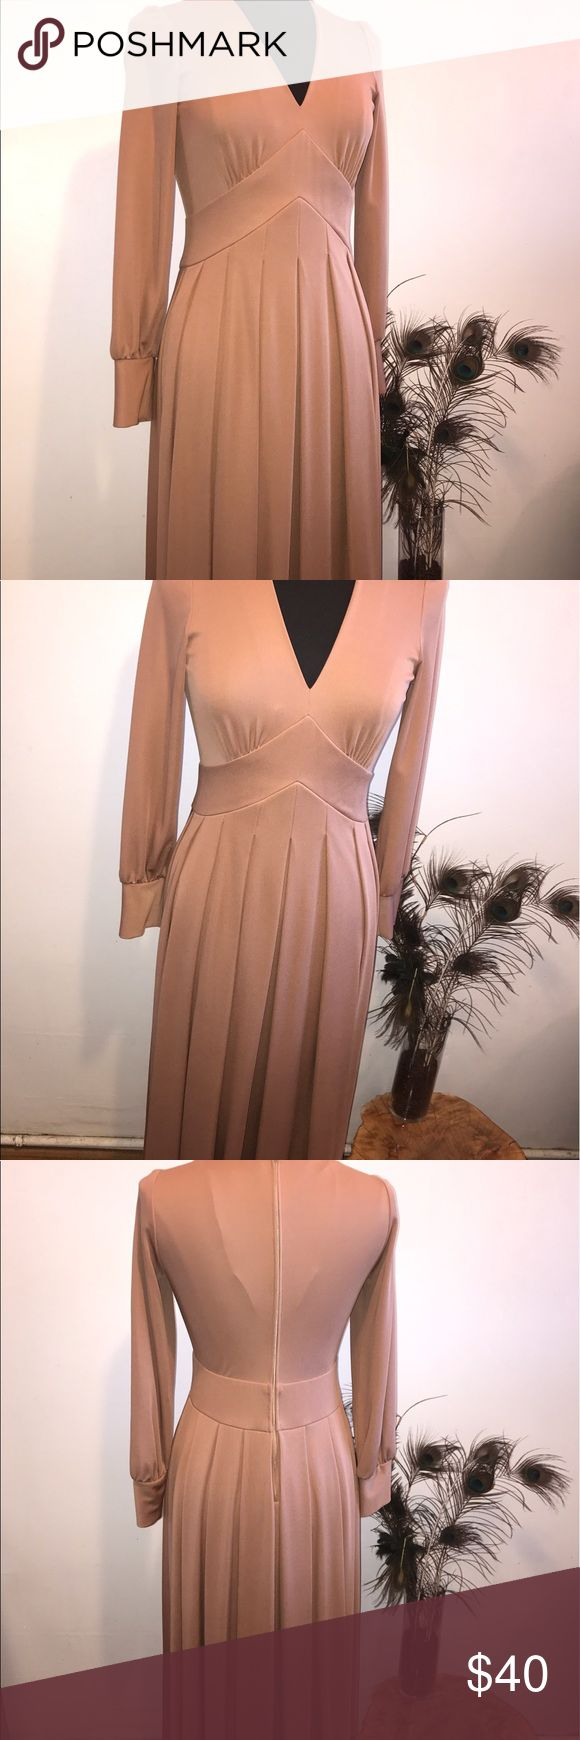 "***VINTAGE*** Gorgeous 70's/80's Nude Long Dress **VINTAGE*** Gorgeous 70's/80's Nude Long Pleated Dress, no tags but fits like a S/M. How do I know it's vintage, because it's my grandmas & she keeps her higher end clothing in great condition, zipped up in wardrobe bags! This dress has great details! Probably 100% polyester, well made & well kept. This is a true gem, I call it ""Dancing Queen""! 💃 Dresses Long Sleeve"